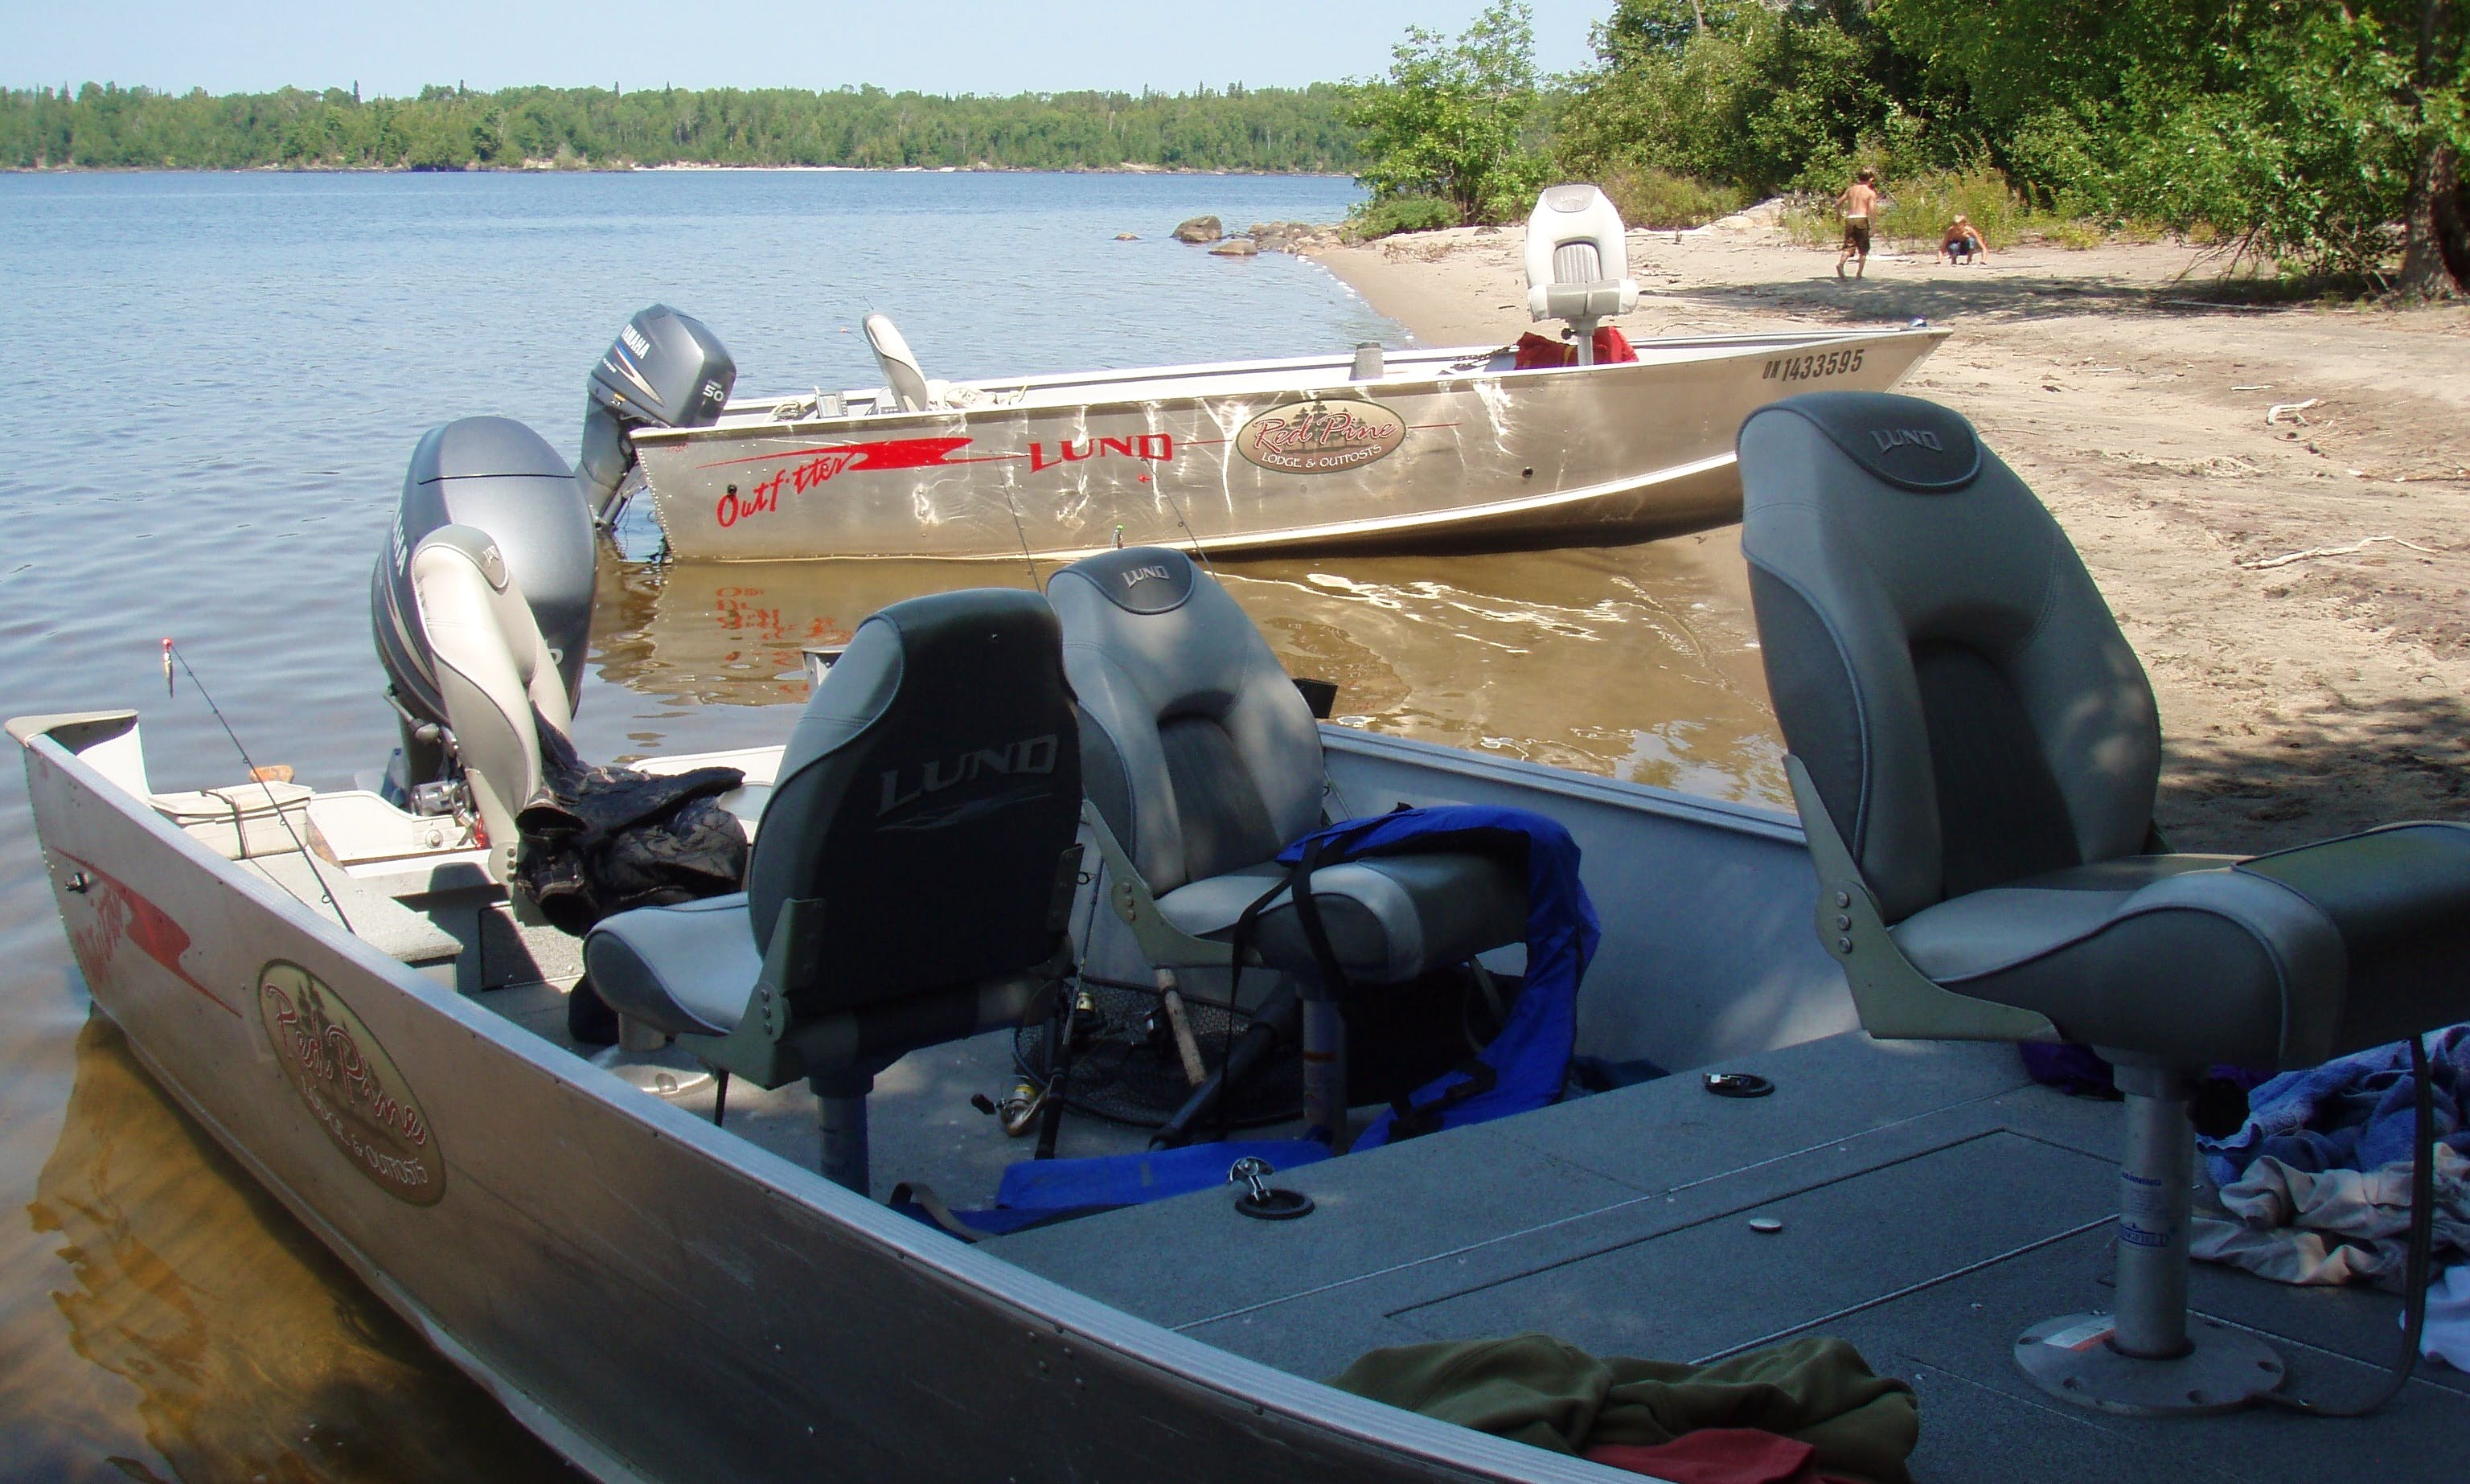 18' Fishing Boat Rental in Ontario, Canada